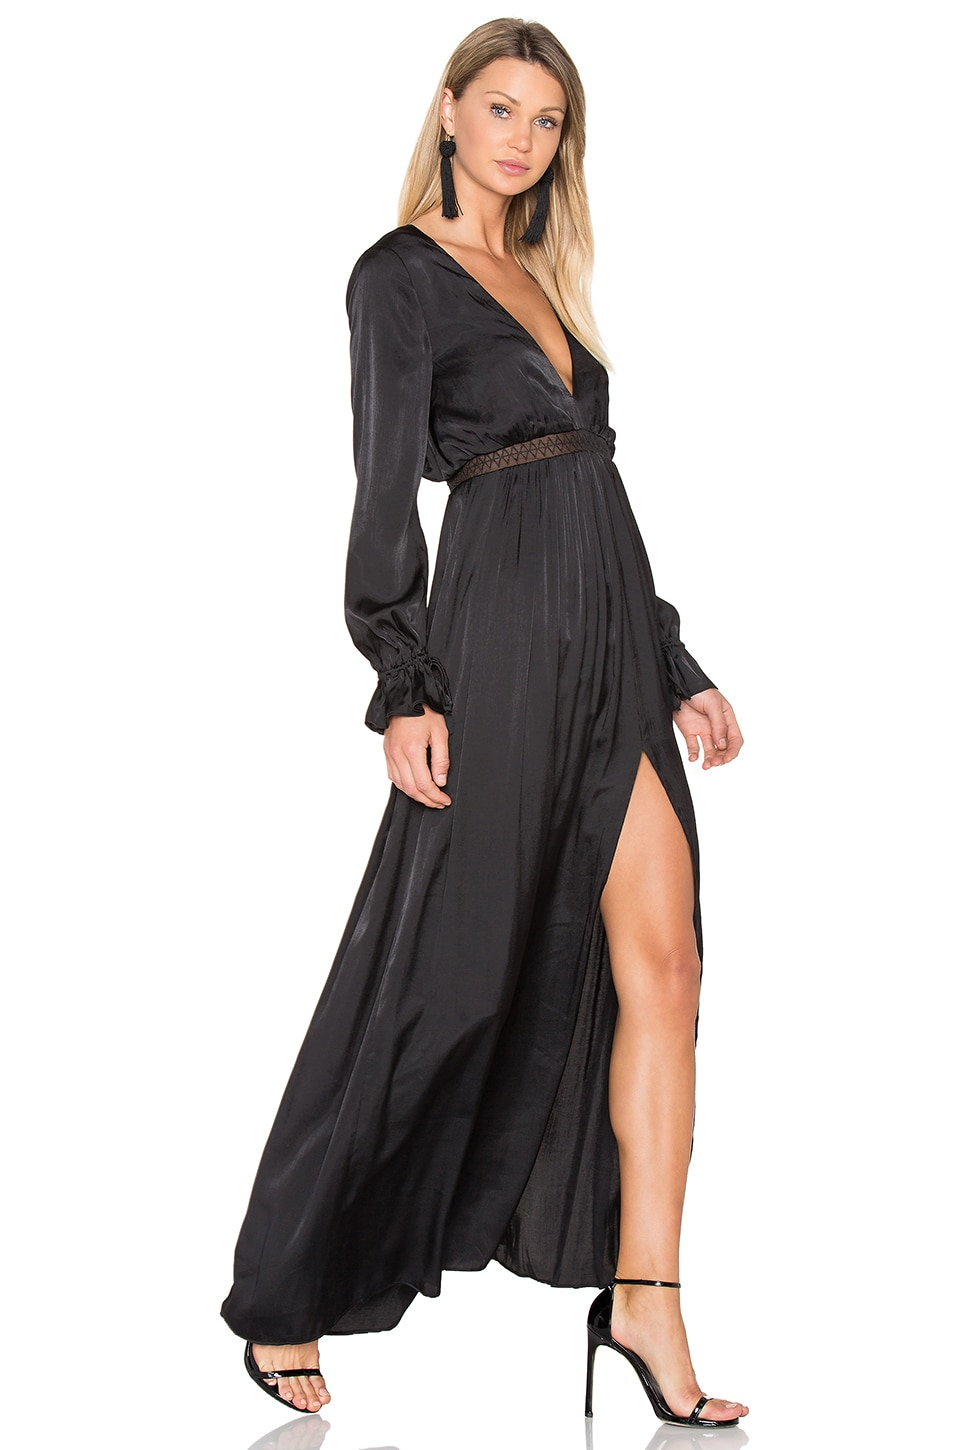 x REVOLVE Olivia Maxi Dress by THE JETSET DIARIES